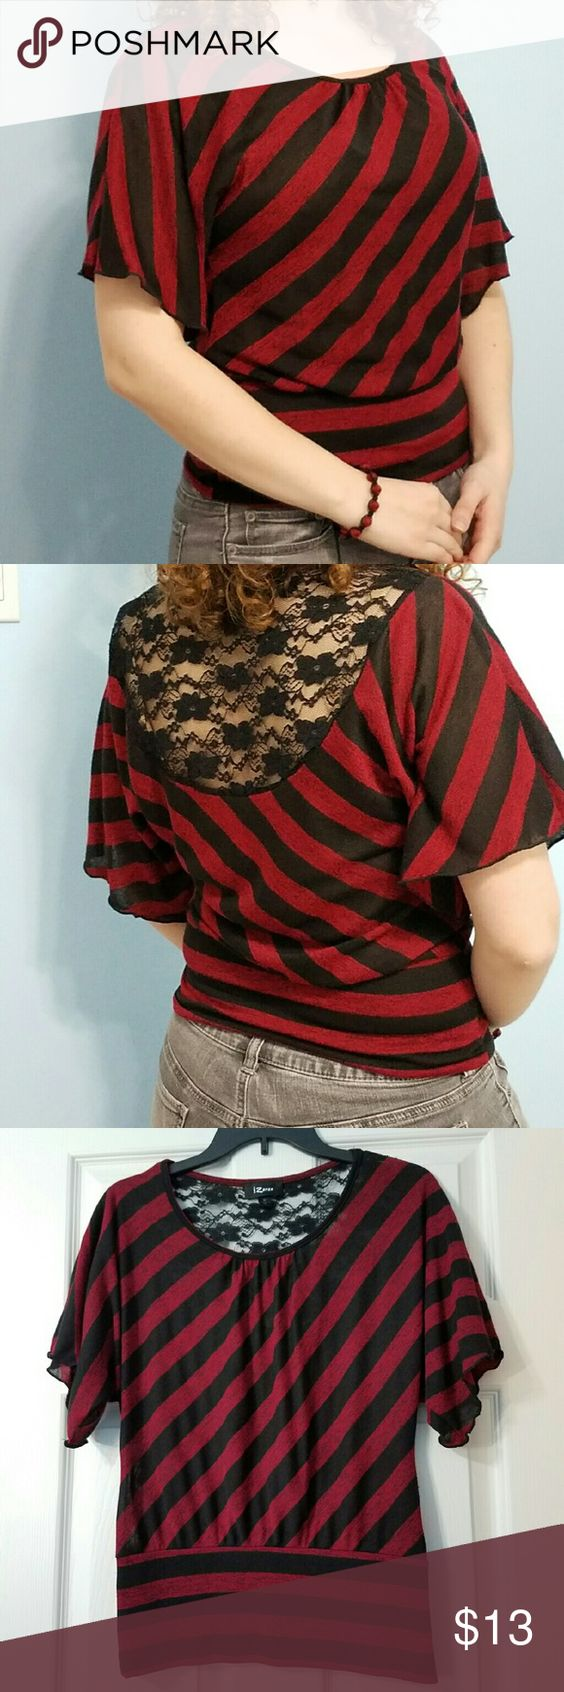 Selling this IZ Byer Red and Black Striped Lace-Back Top on Poshmark! My username is: legend_abend. #shopmycloset #poshmark #fashion #shopping #style #forsale #Iz Byer #Tops